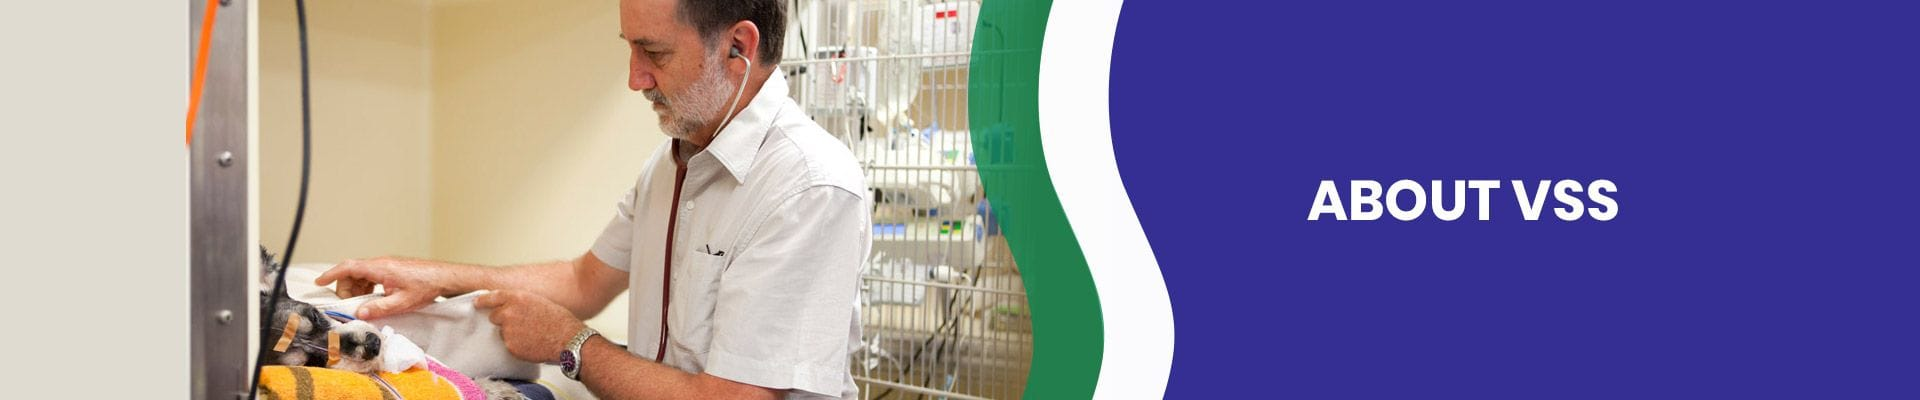 Veterinary Team at VSS | Brisbane & Gold Coast Vet Specialists